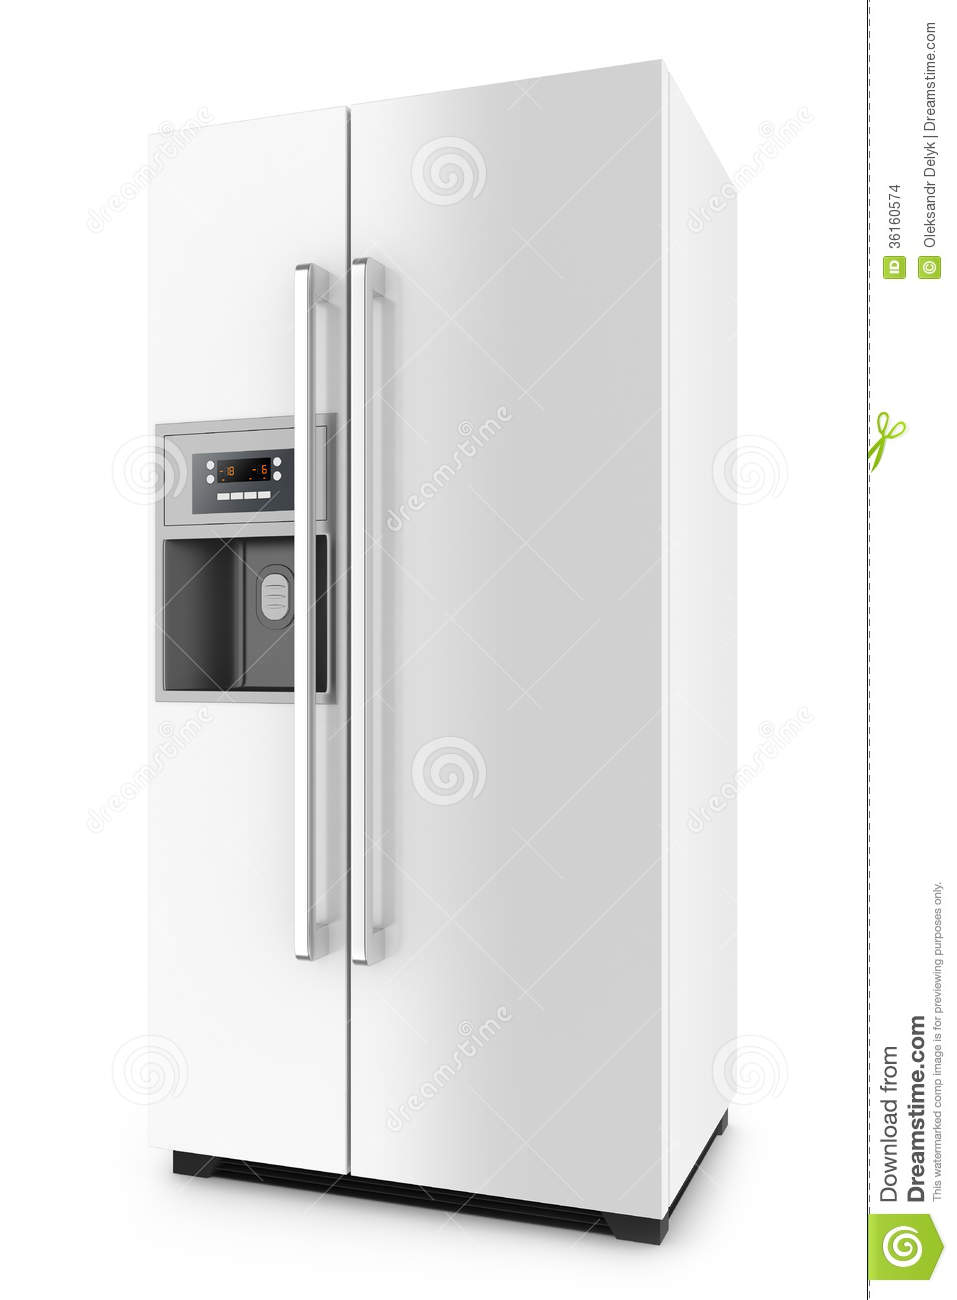 WHITE Fridge Refrigerator manuals  the list of available